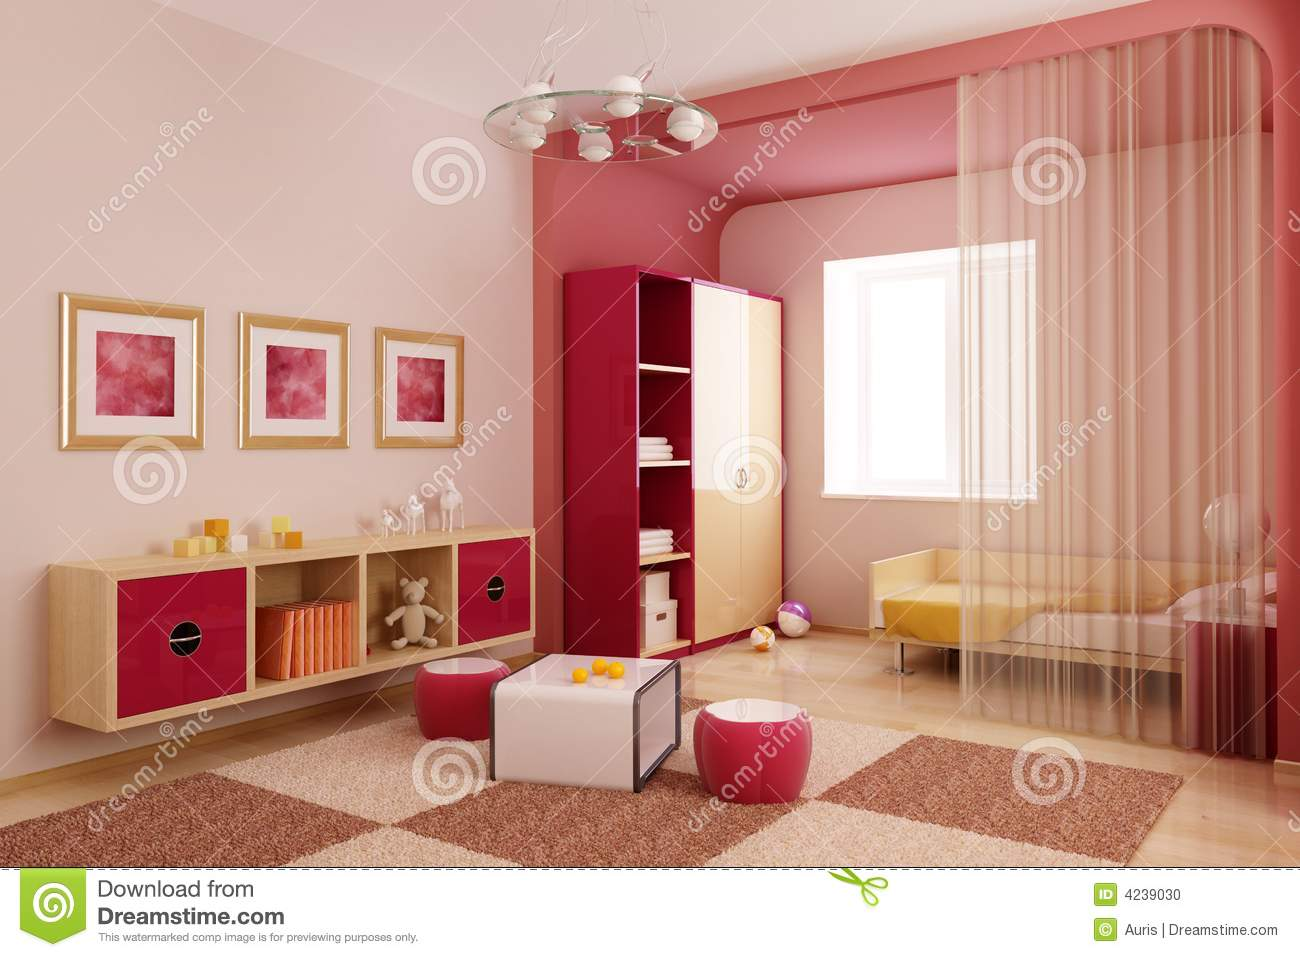 2d And 3d Baby Room Interior Design Joy Studio Design